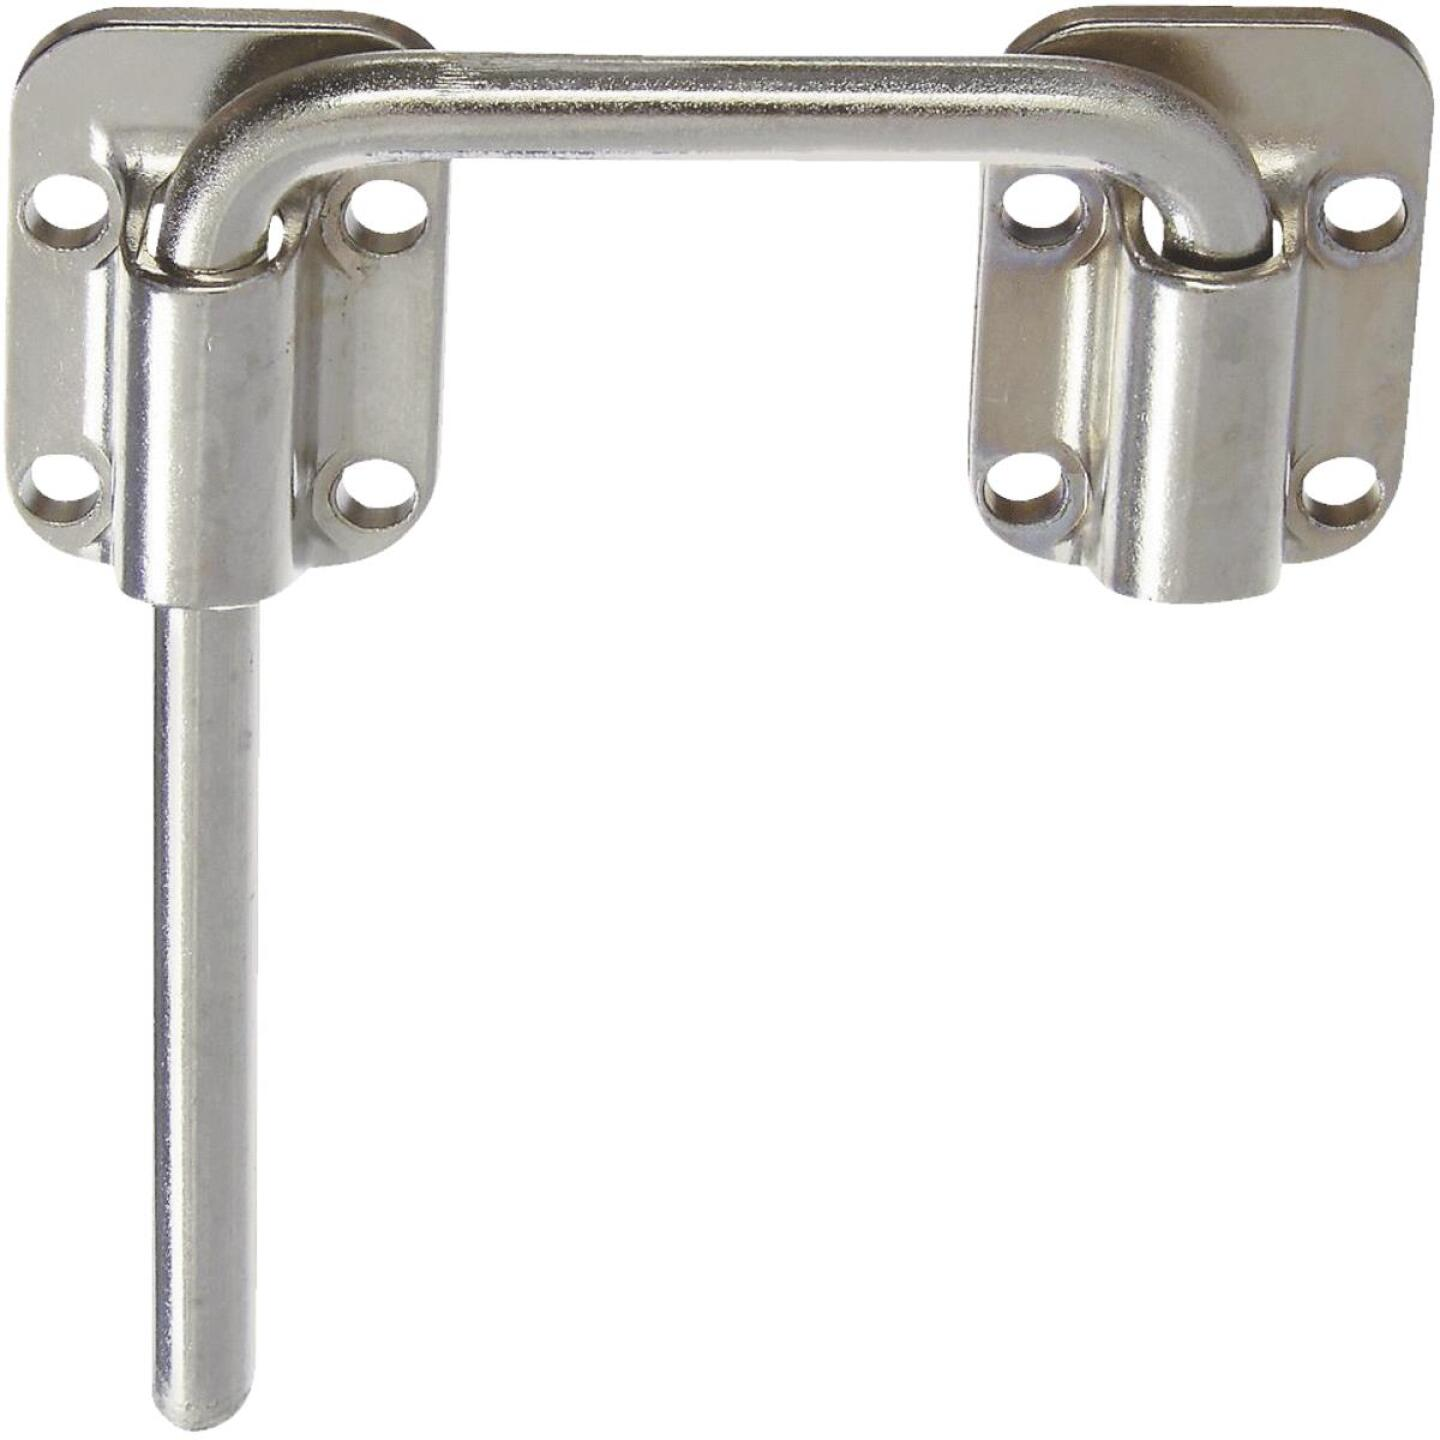 National Door 2-1/2 In. Nickel Slide Bolt Image 1